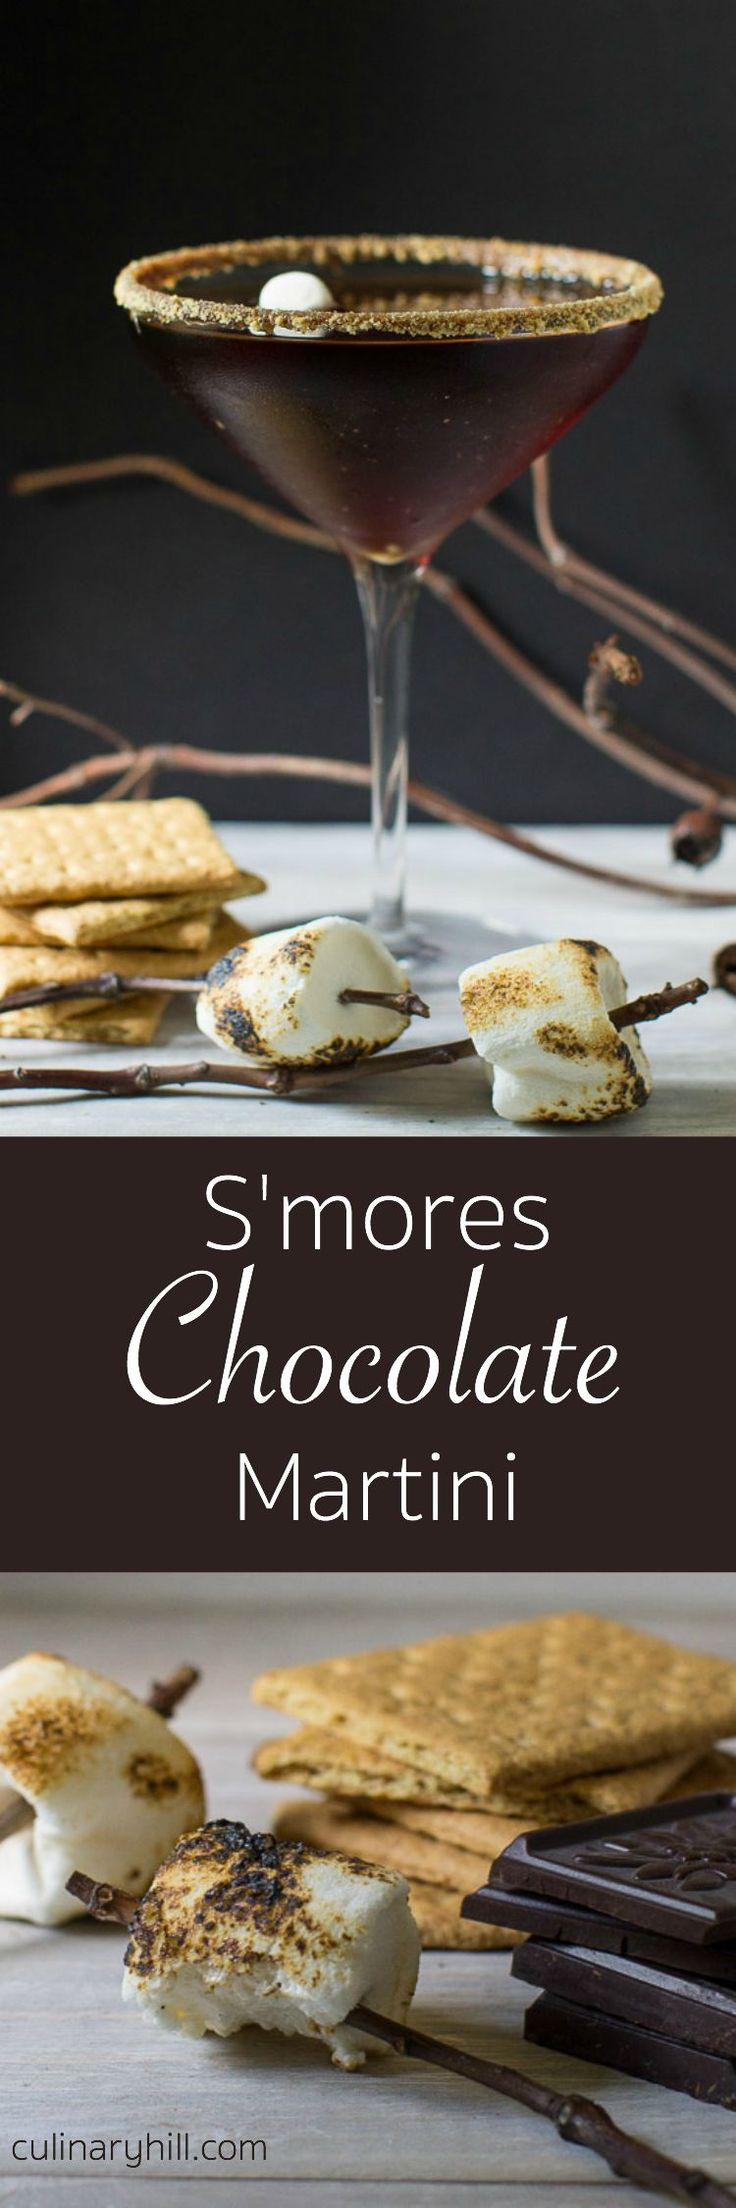 A rich, indulgent chocolate martini with all the trappings of traditional S'mores.